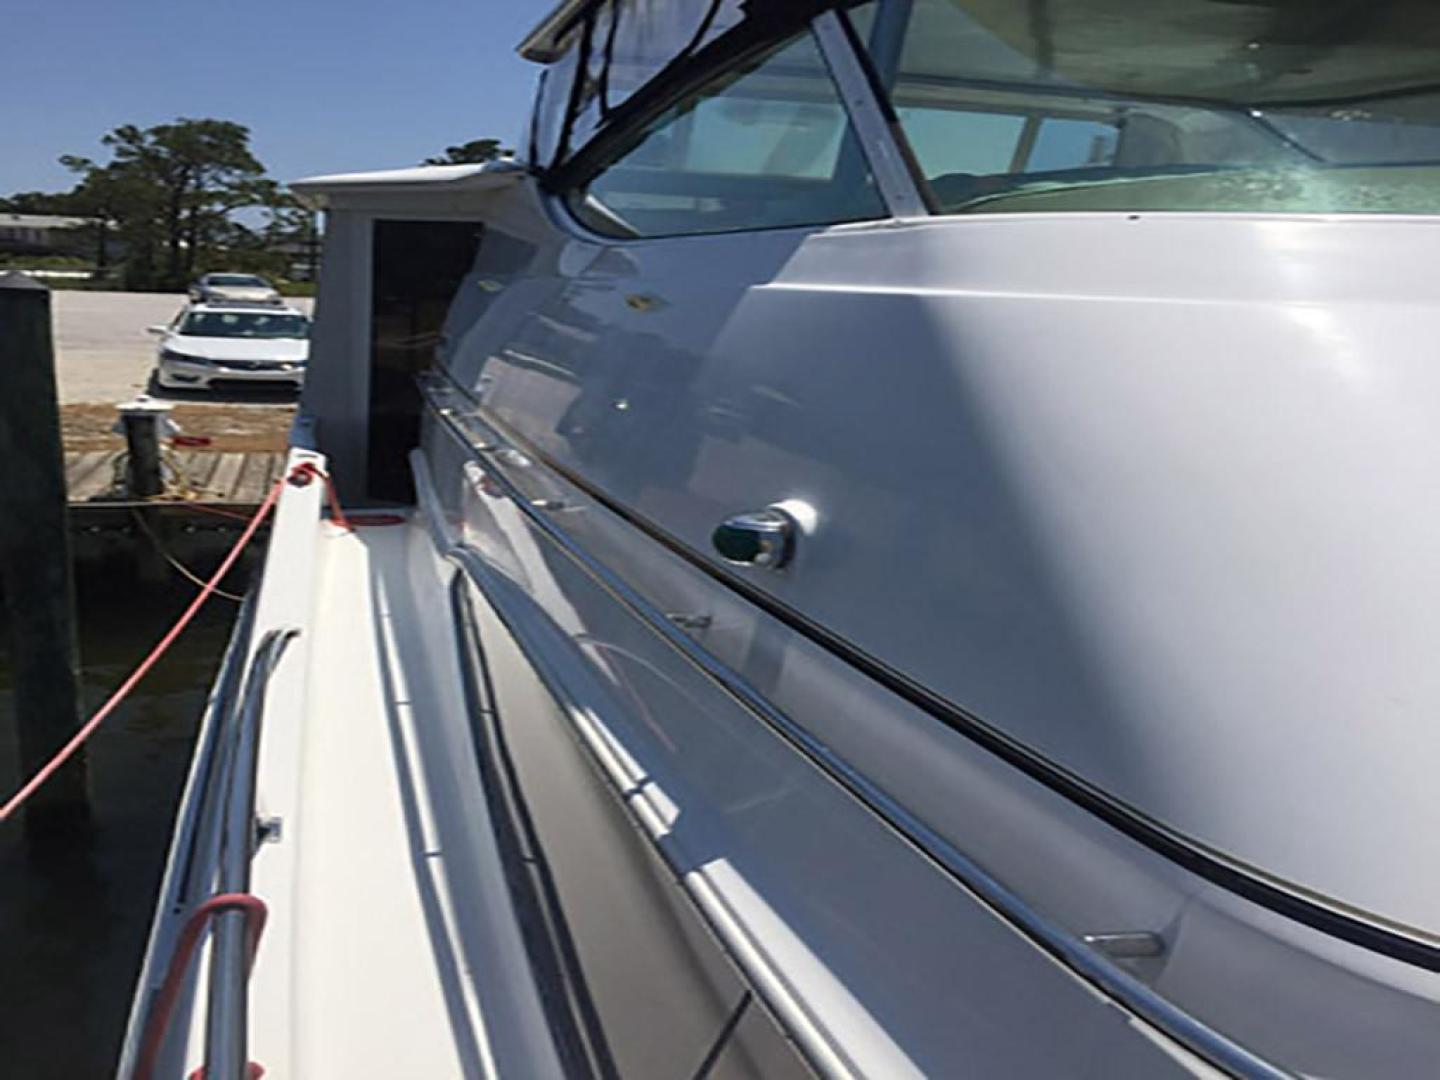 Carver-466 Motor Yacht 2001-Rollin in the Tides Pensacola-Florida-United States-Starboard Side Deck Aft-377511 | Thumbnail